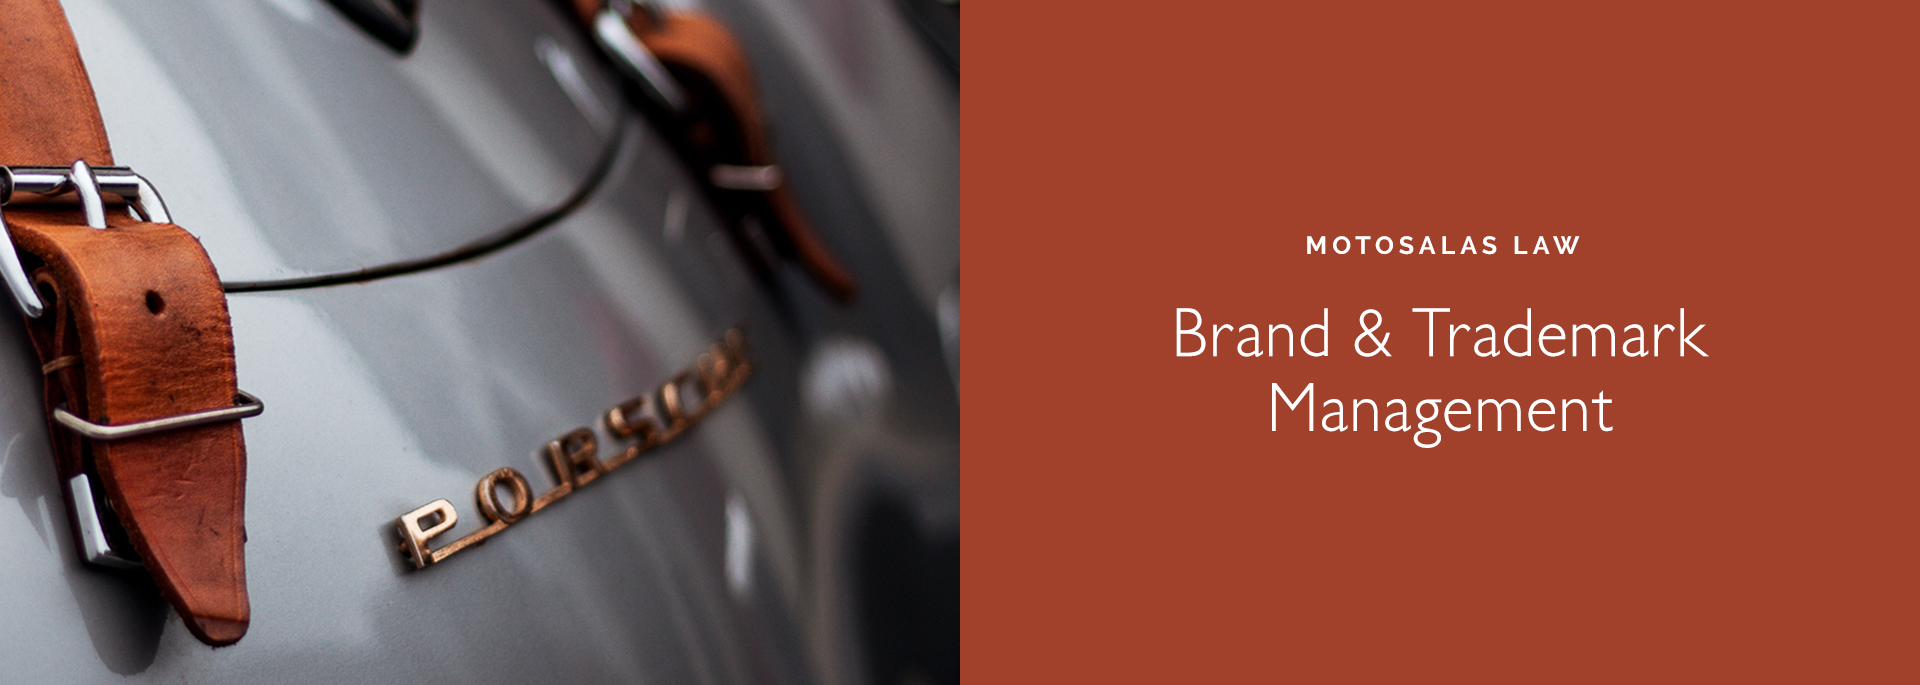 MotoSalas Law brand and trademark management